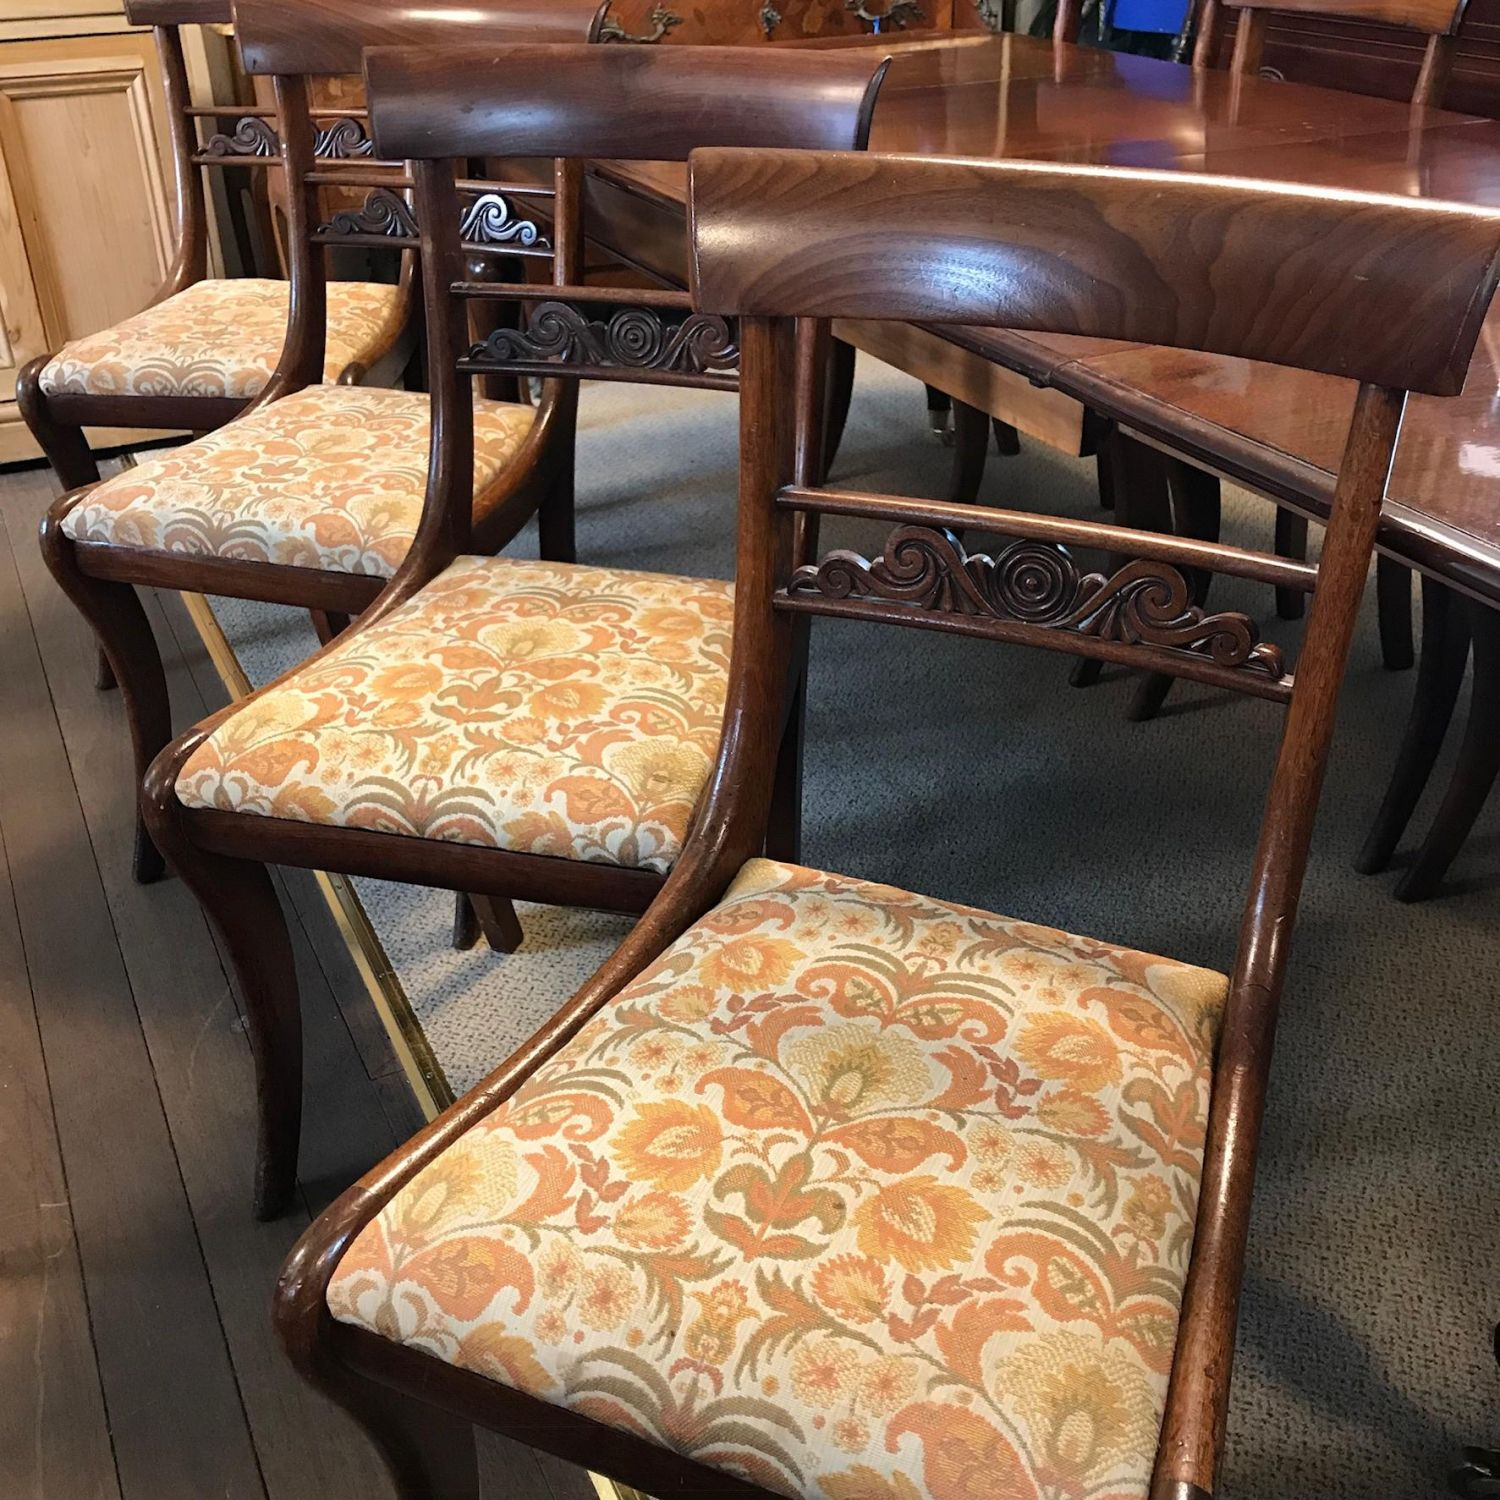 Antique Dining Chairs Set Of Eight Regency Mahogany 7df90973 Be1d 477f Af7d 7b8eb1f7bc0c Jpeg